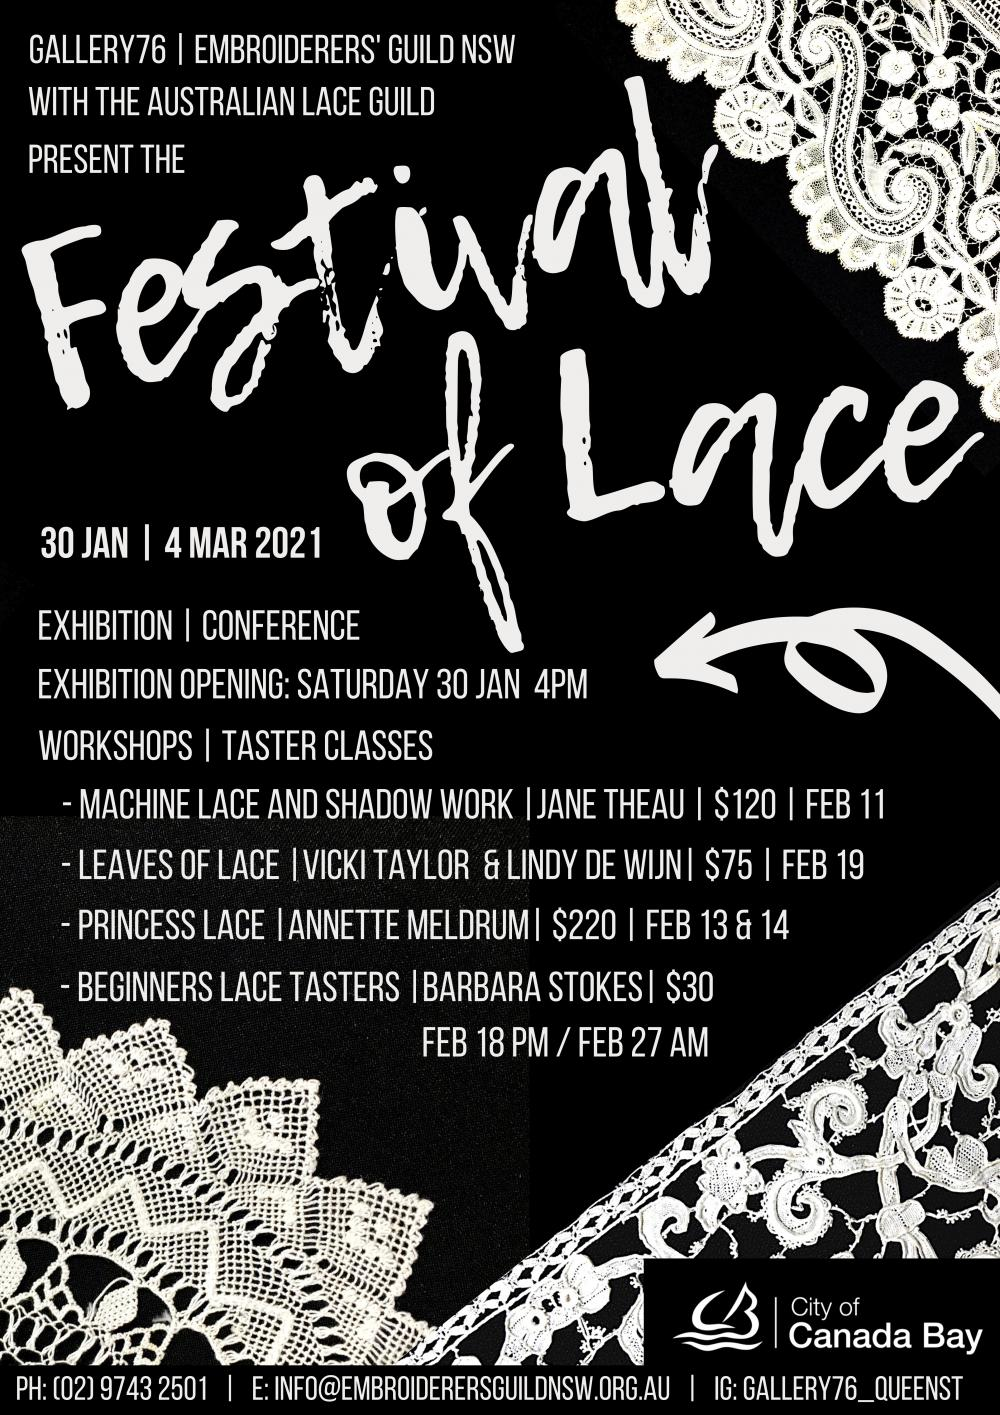 Festival of lace